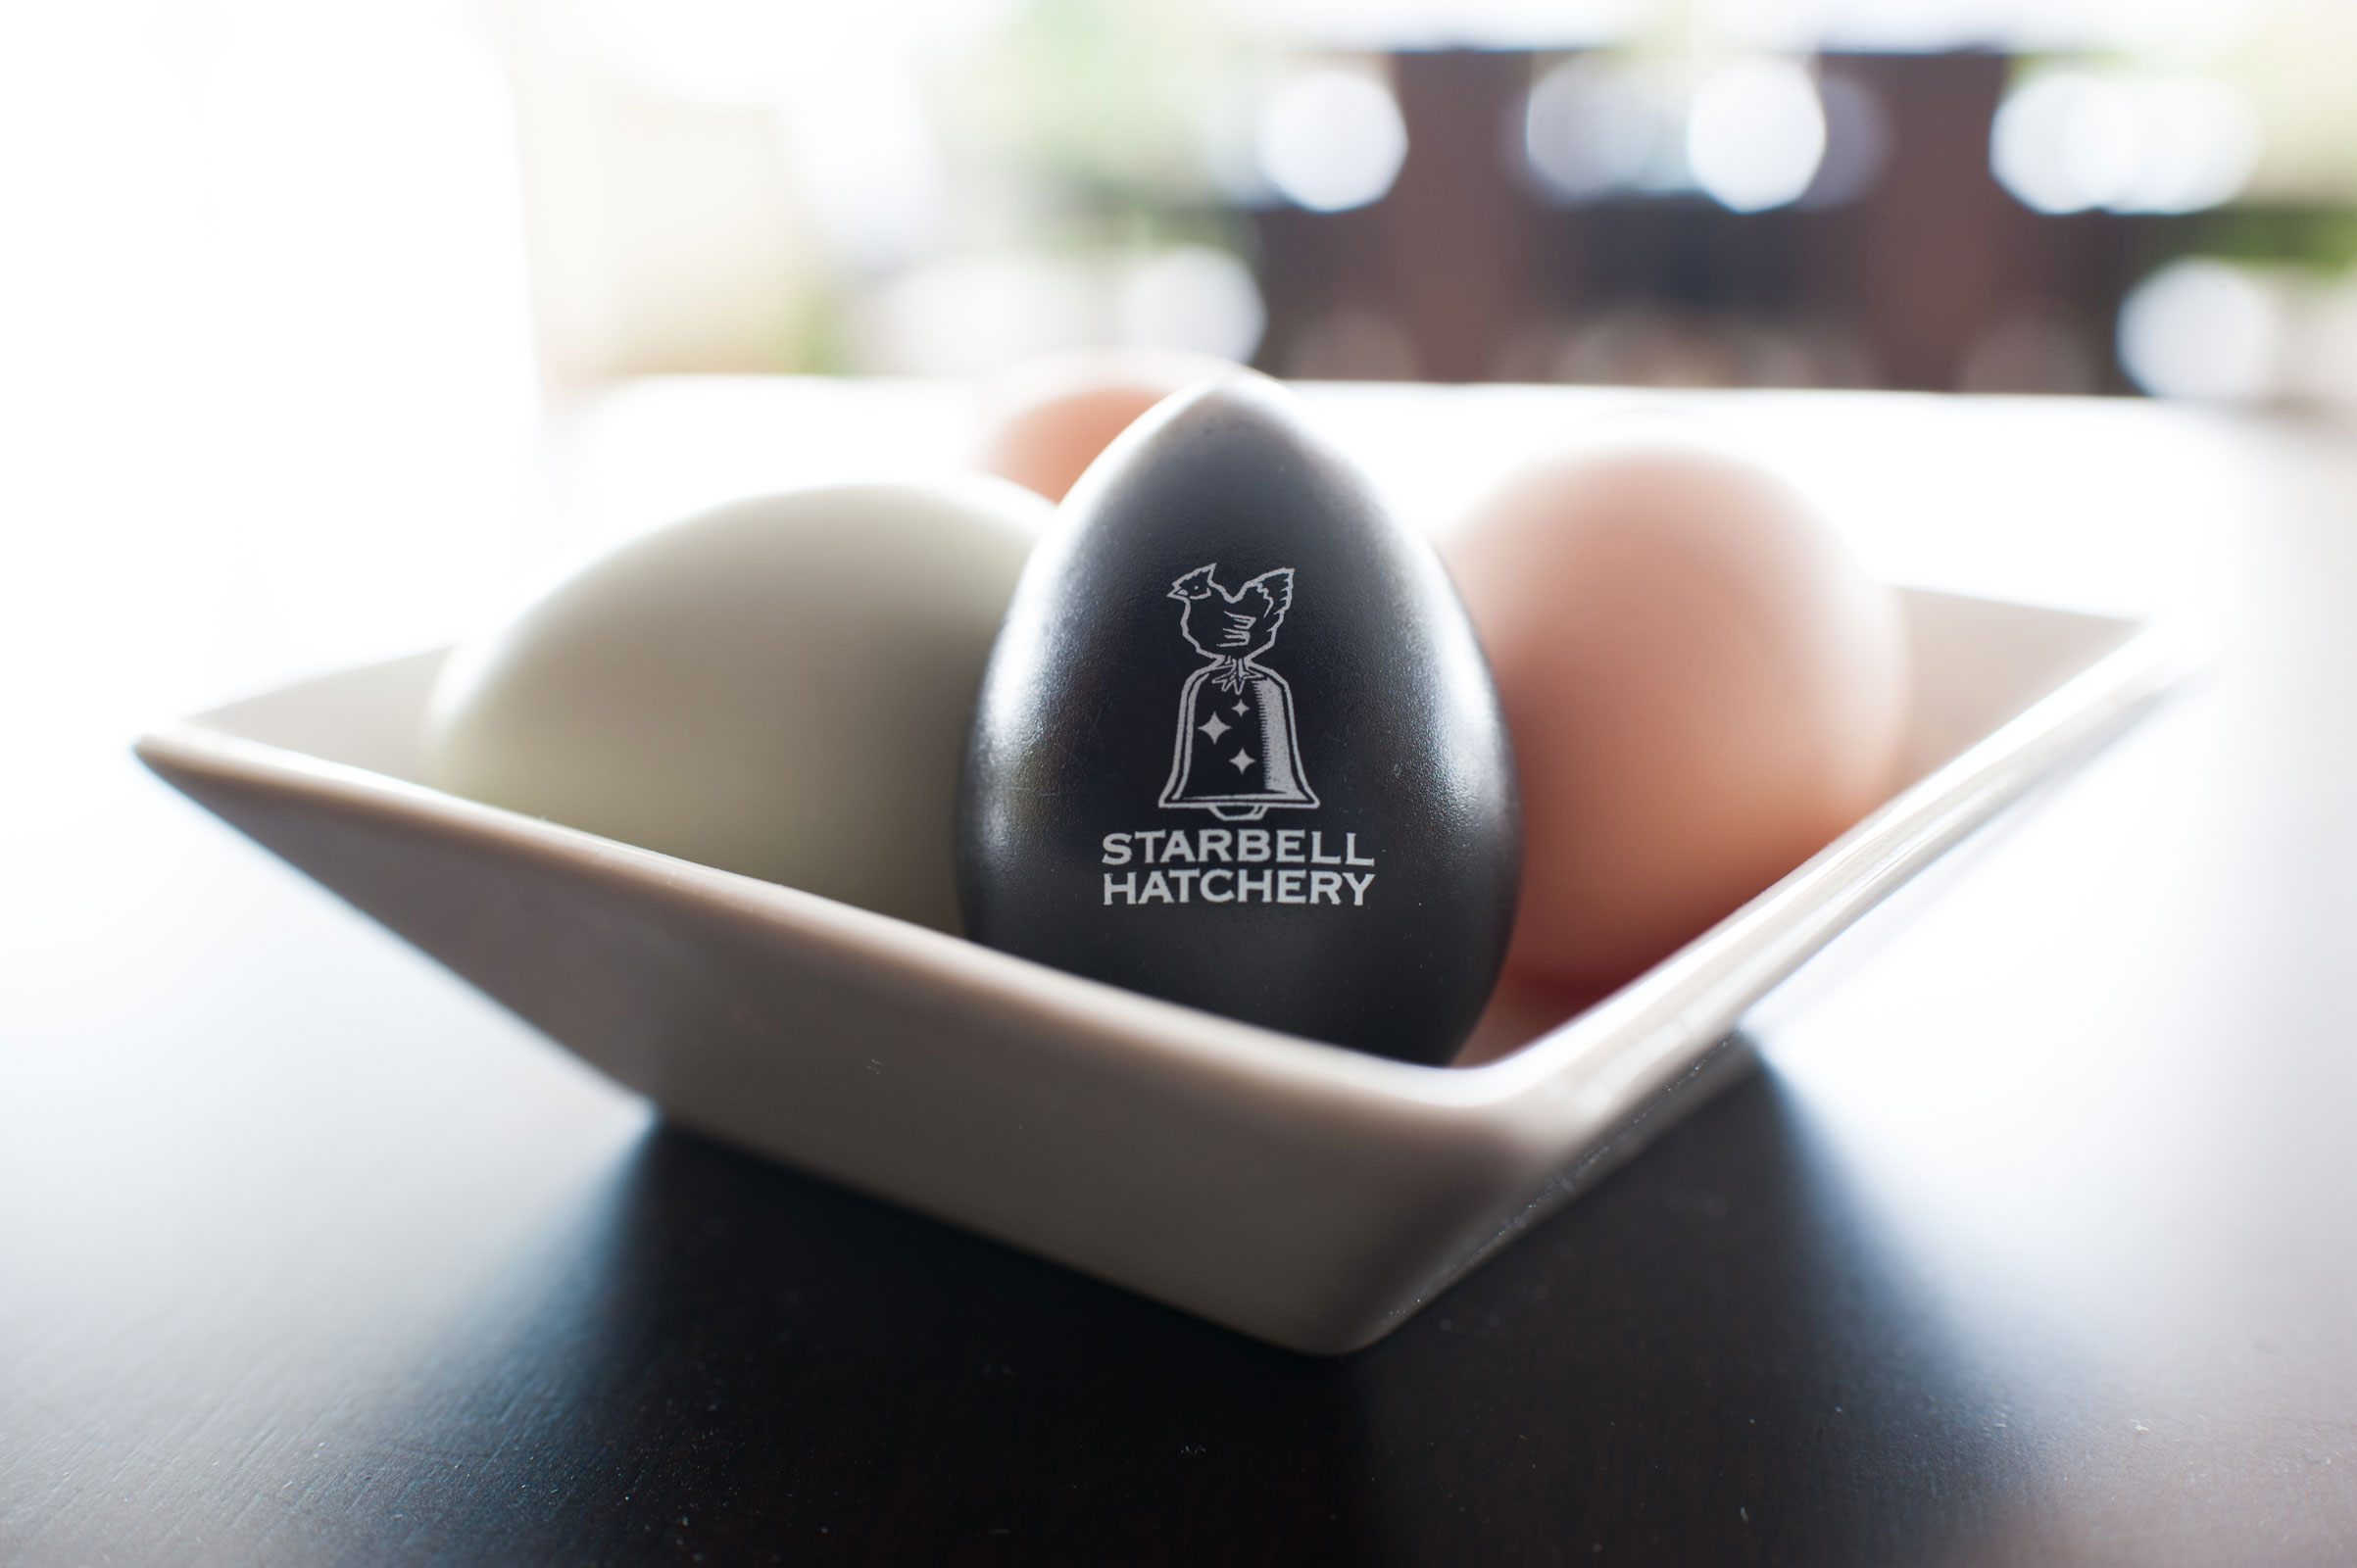 Branding-Photography-Editorial-Style-Egg-Shaker-in-Egg-Bowl